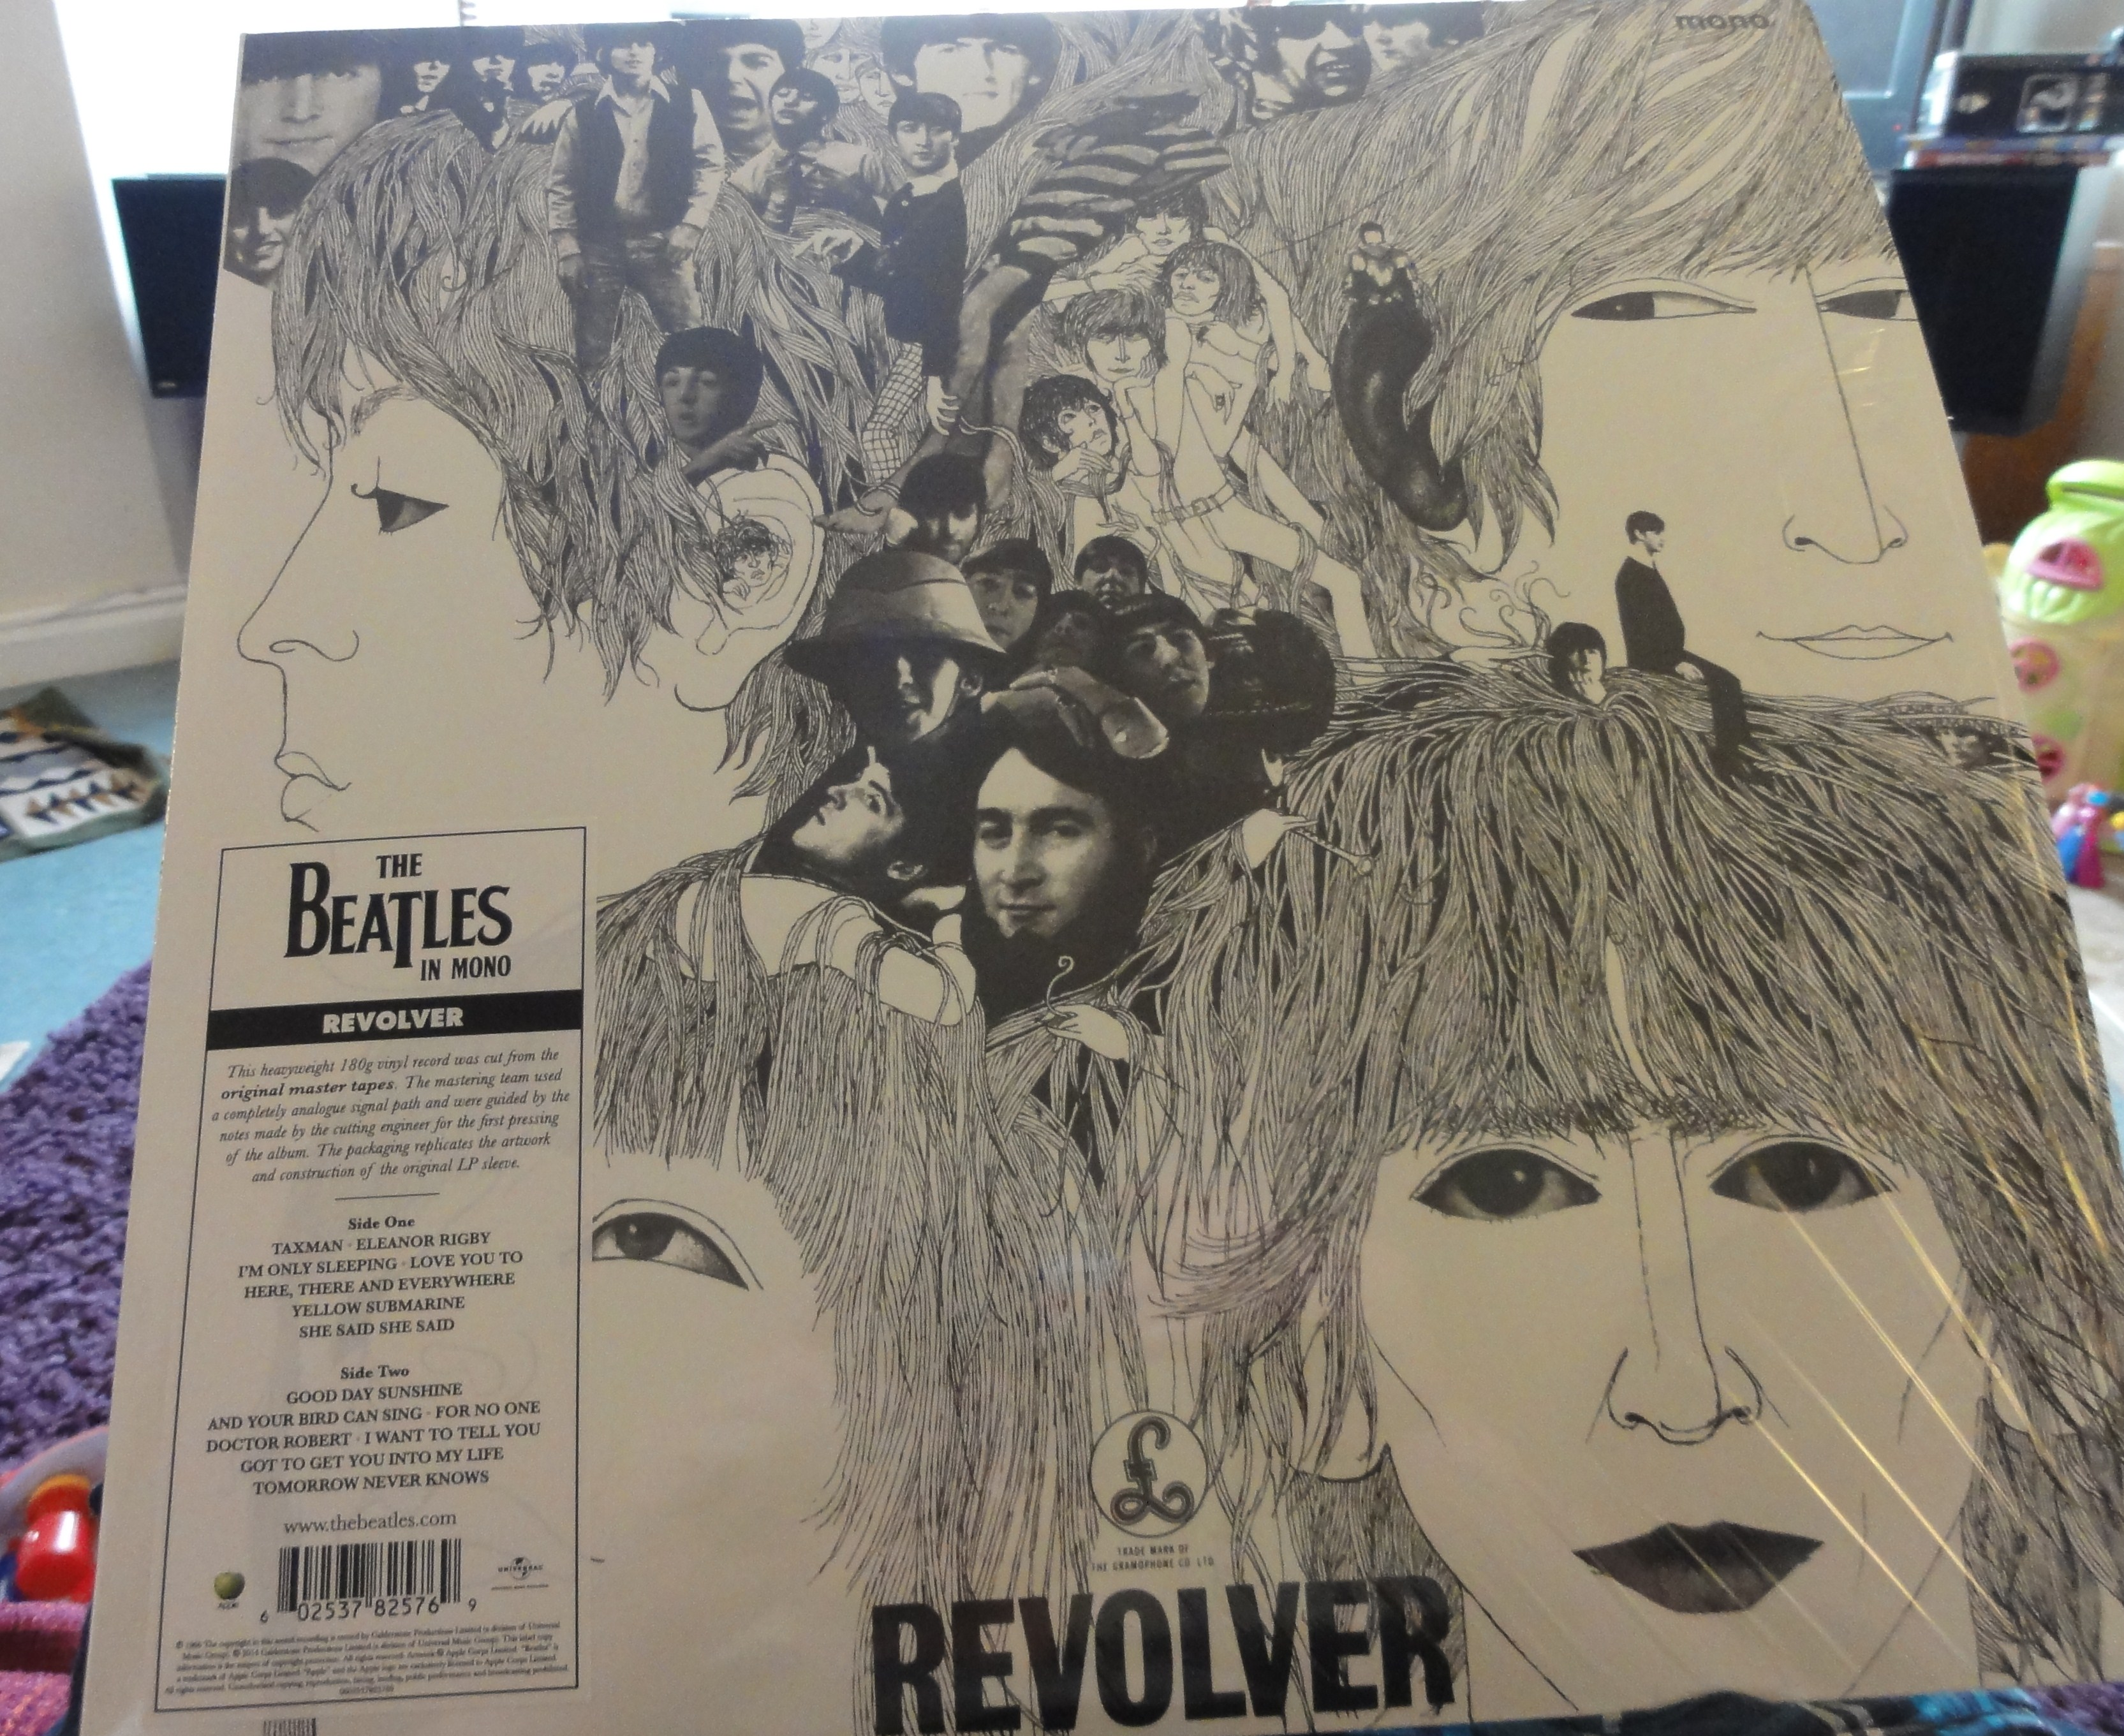 My own spin on The Beatles' remastered 'Revolver' in mono | Ad's